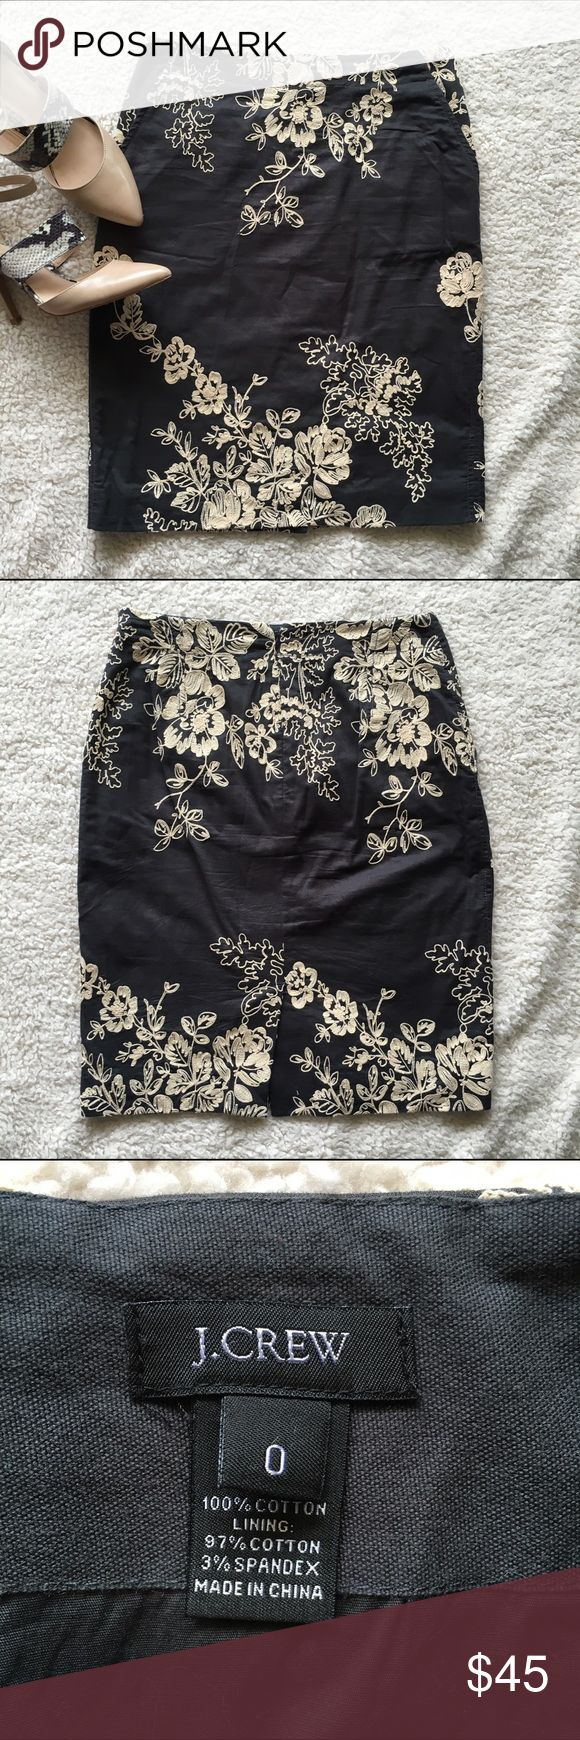 """J. Crew Floral Appliqué Pencil Skirt, size 0 J. Crew dark gray pencil skirt with tan floral appliqué pattern, fully lined, with side pockets and a back slit. Good used condition from a smoke-free, pet-free home. Approx. measurements: Waist: 13.25"""", Hips: 18"""", Length: 21"""". Size: 0 J. Crew Skirts Pencil"""